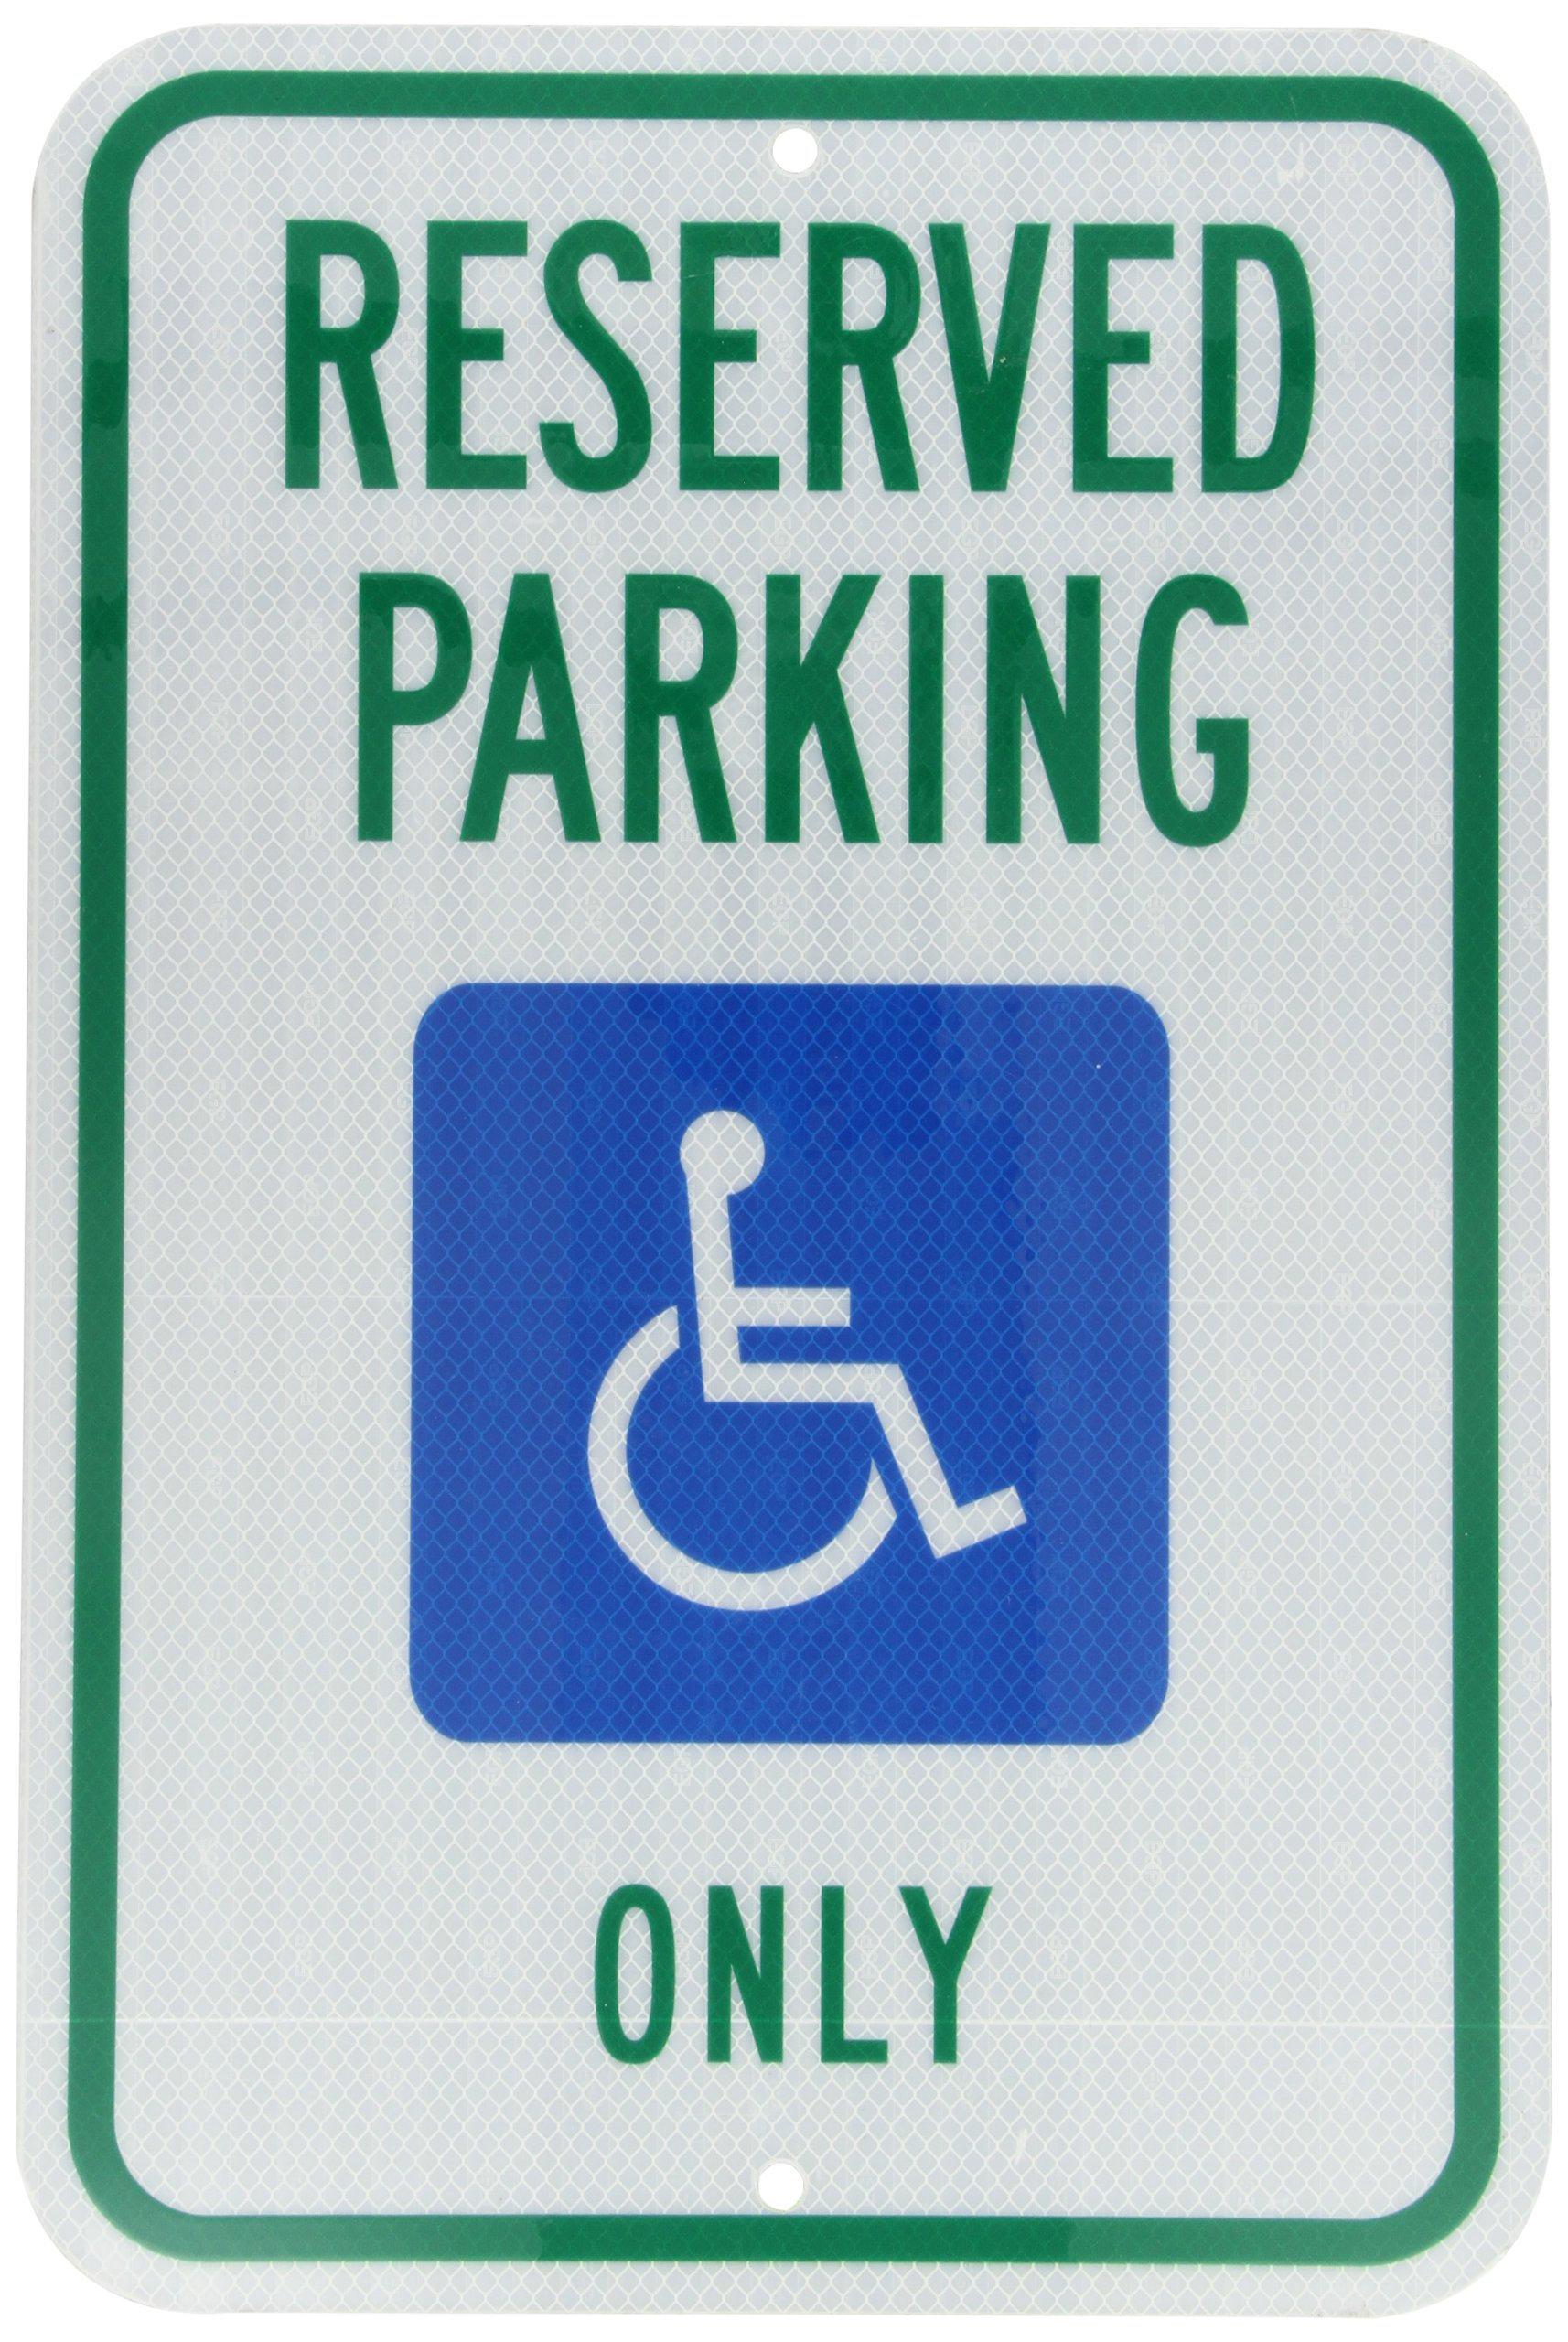 Accuform FRA199RA Engineer-Grade Reflective Aluminum Handicapped Parking Sign (Michigan), Legend''Reserved Parking ONLY'' with Graphic, 18'' Length x 12'' Width x 0.080'' Thickness, Green/Blue on White